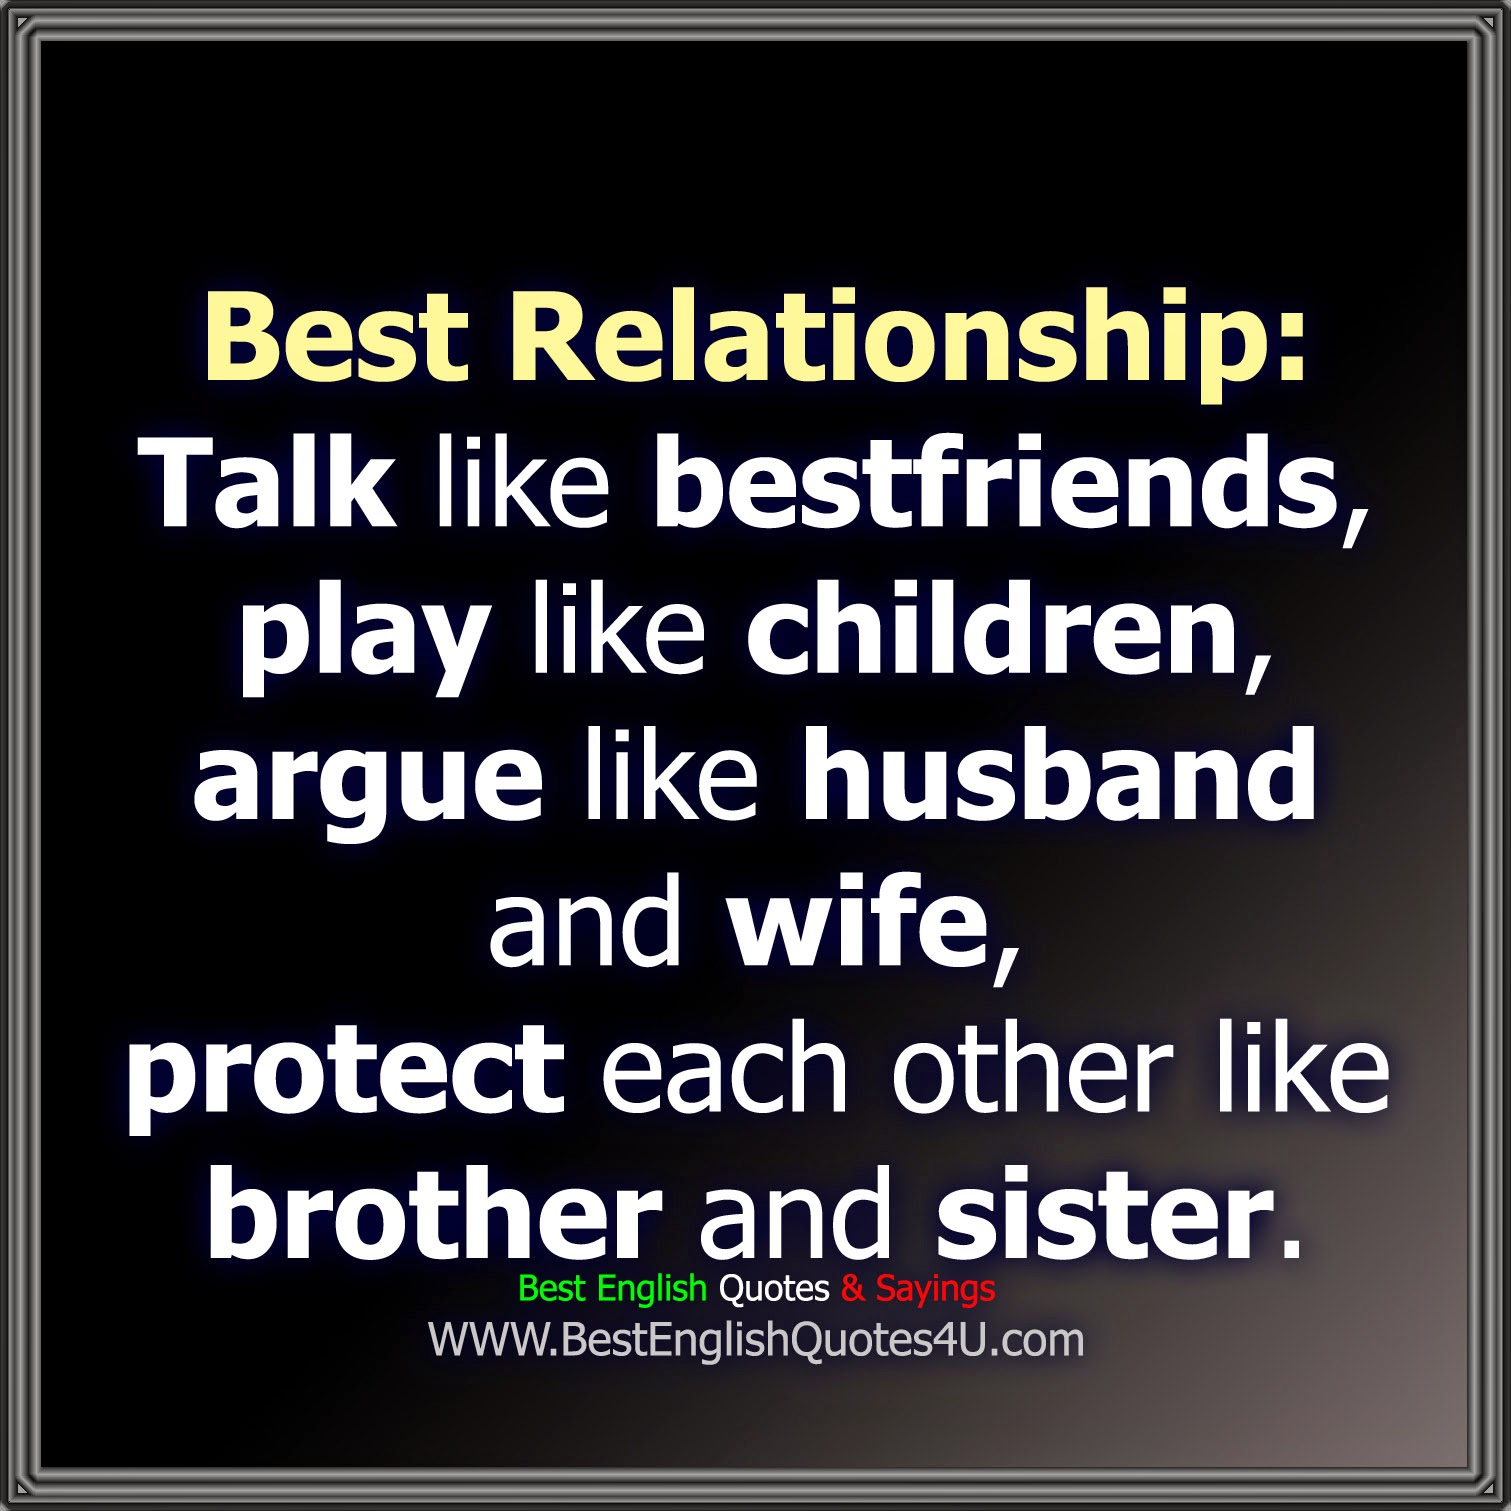 Best Relationship Best English Quotes Sayings